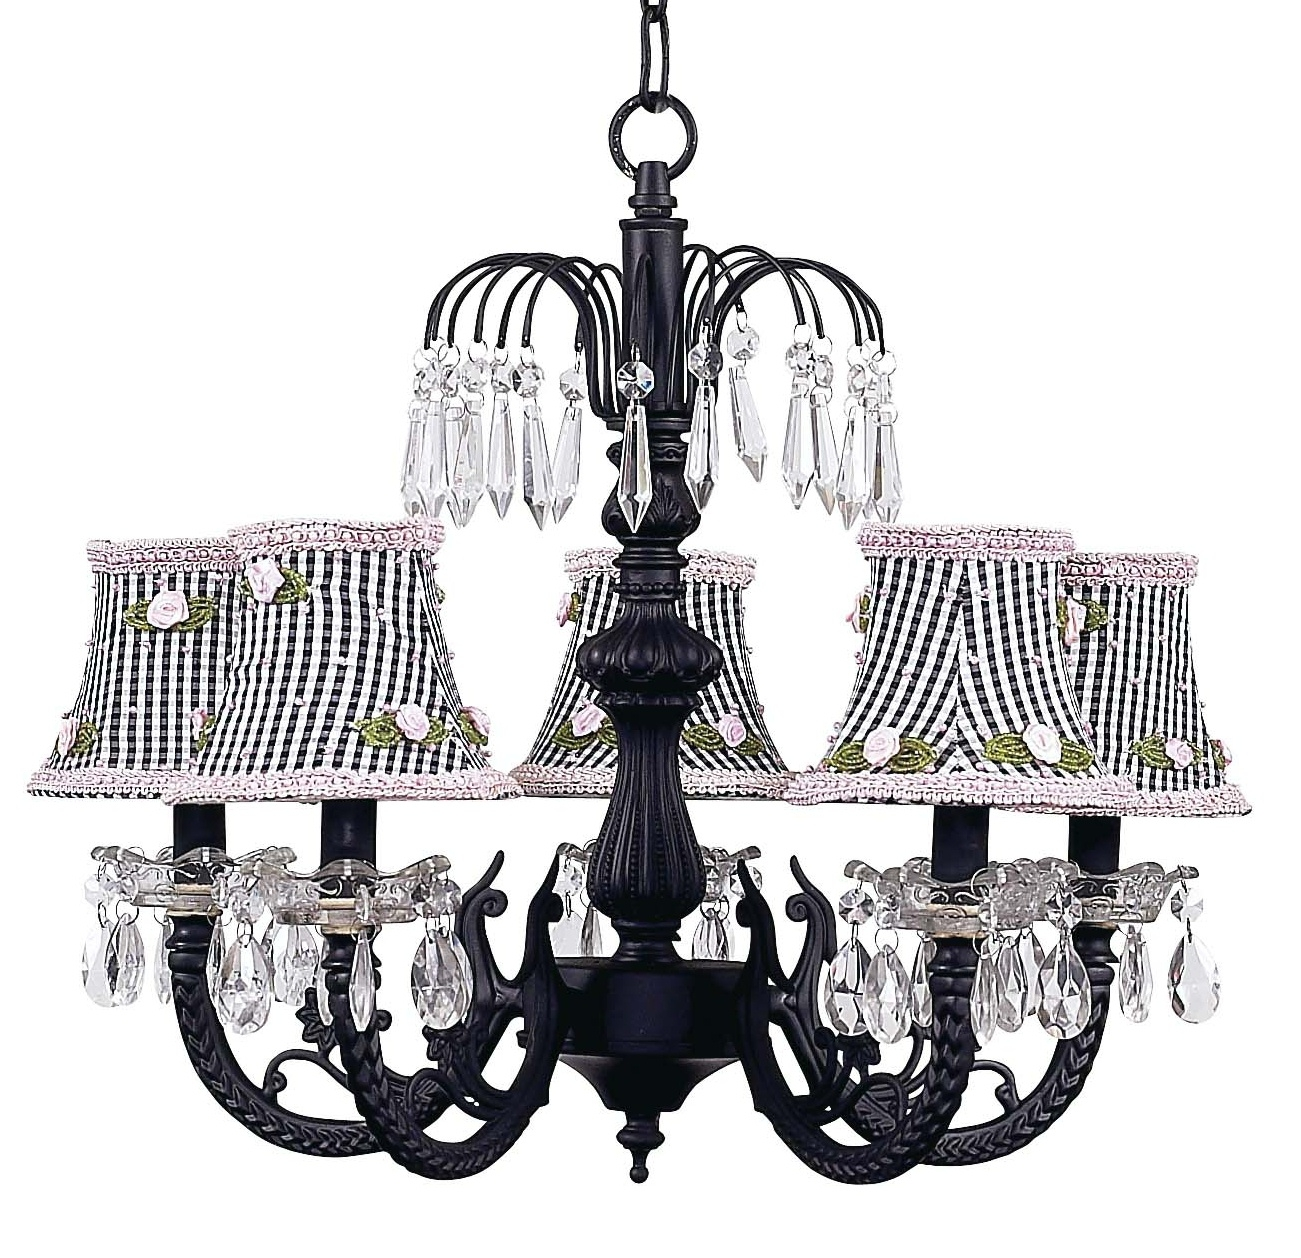 Chic Waterfall Black Chandelier With Check Shades 7047 2255 In Vintage Black Chandelier (#3 of 12)